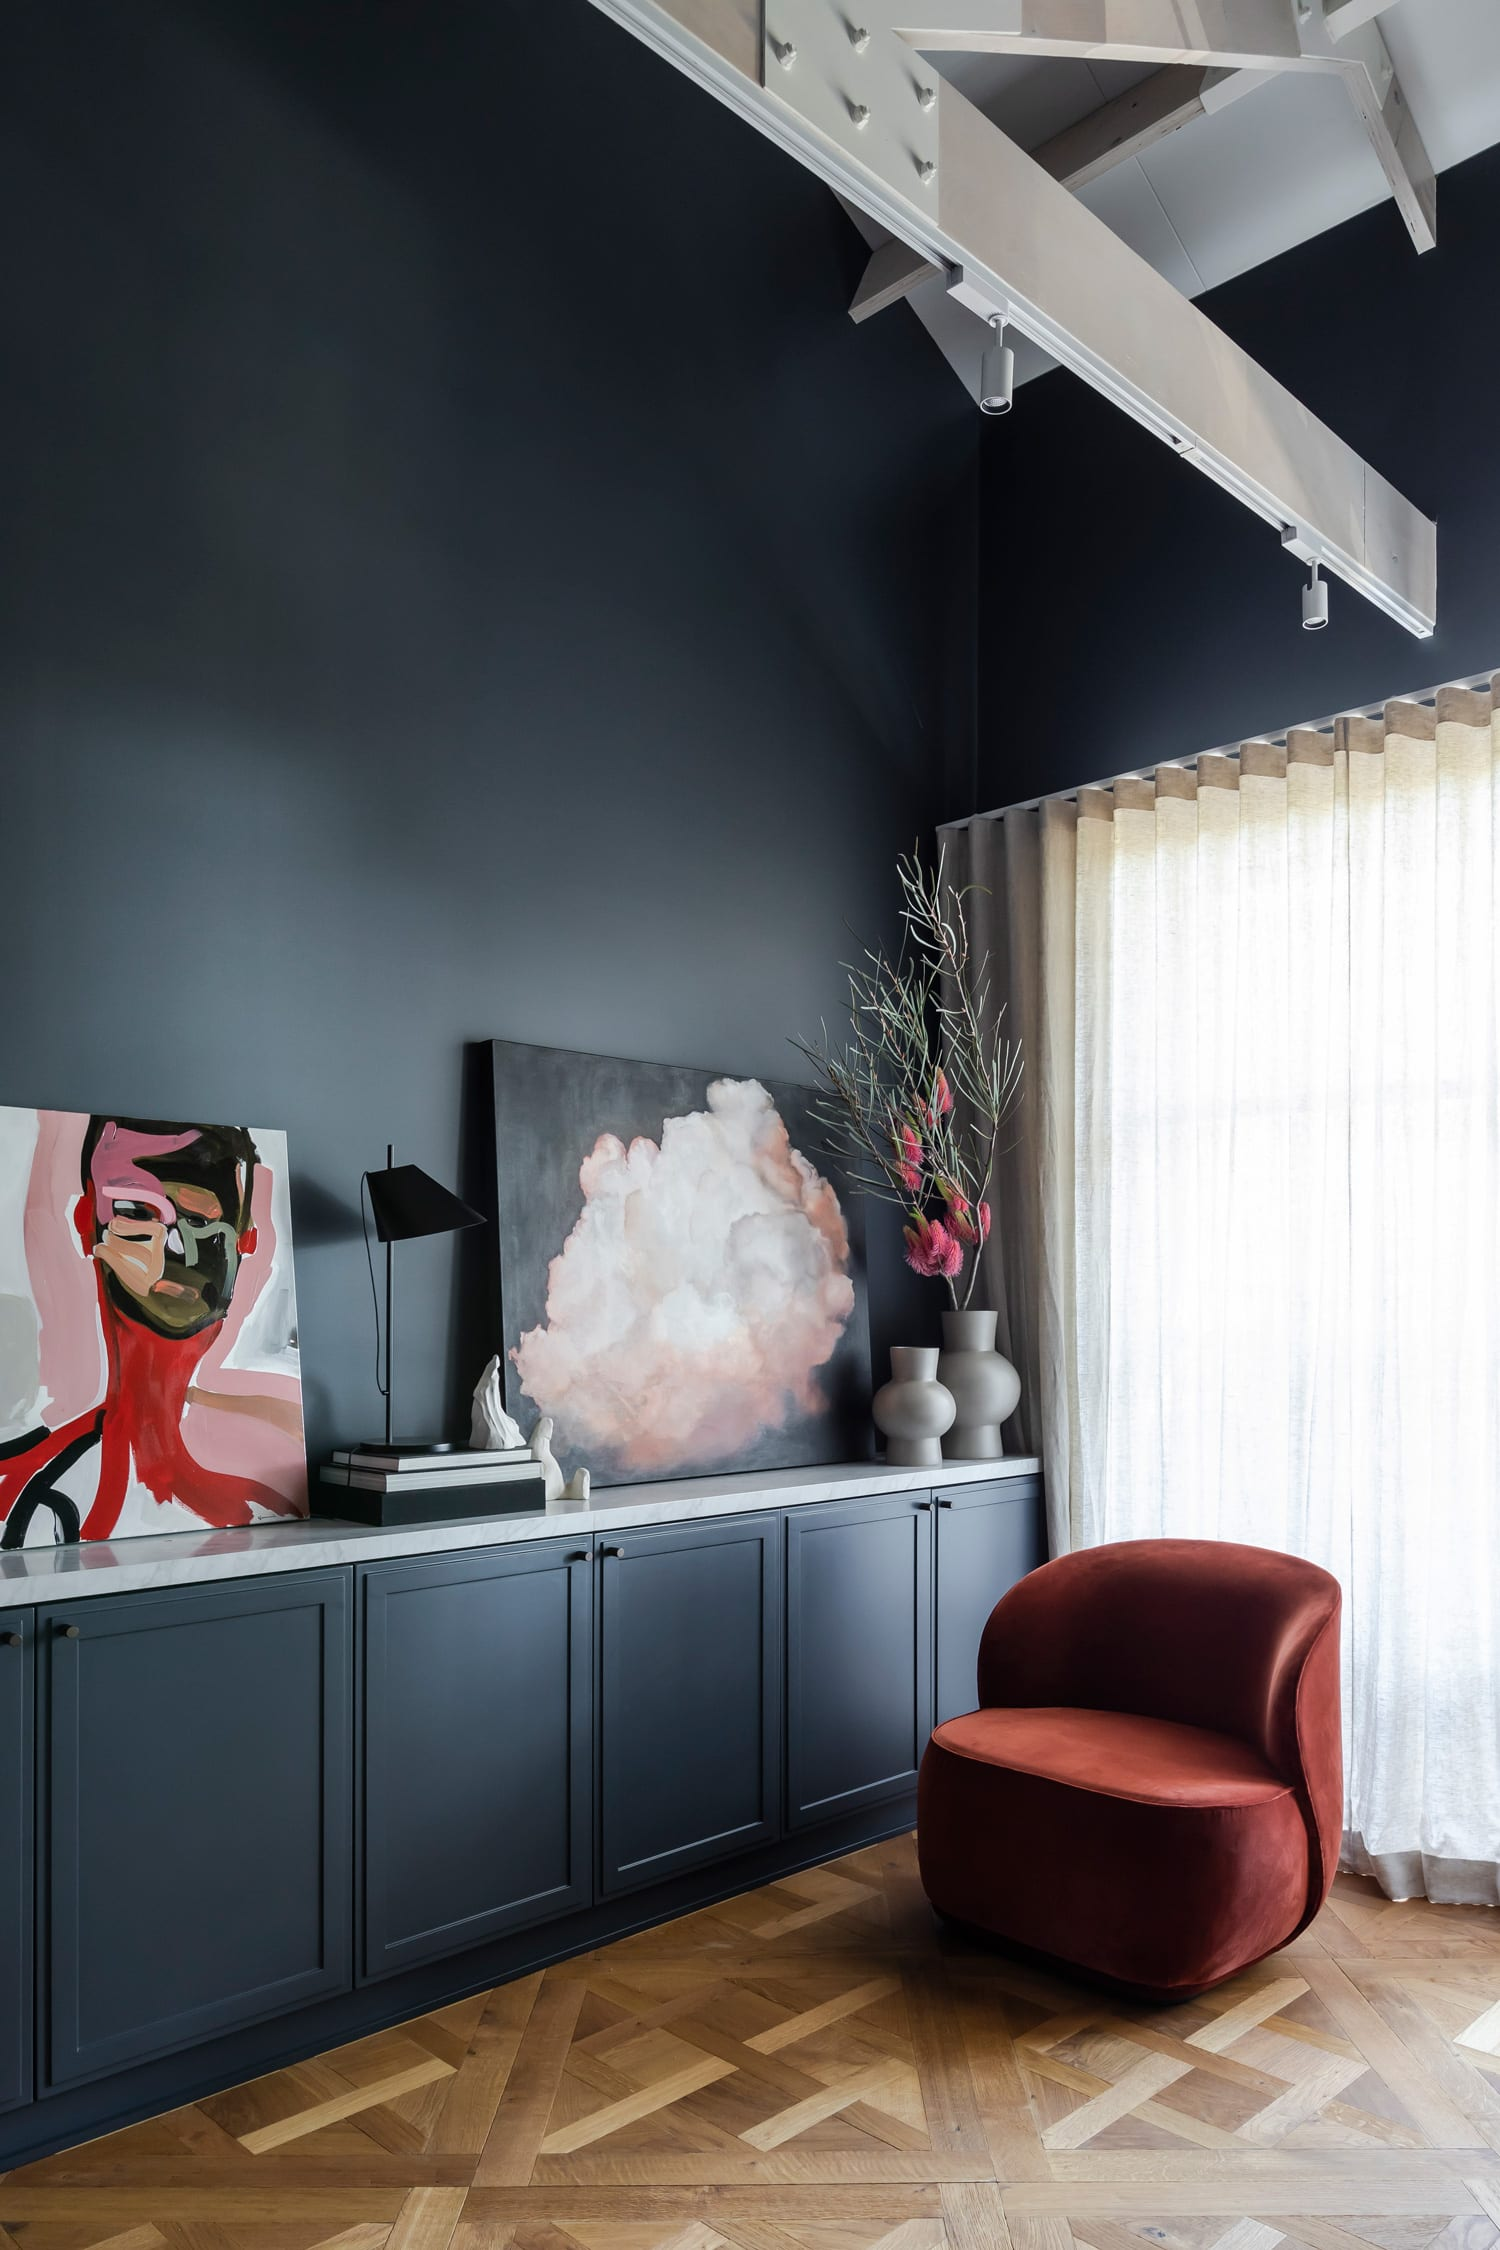 Bischoff Residence by Tom Mark Henry | Yellowtrace